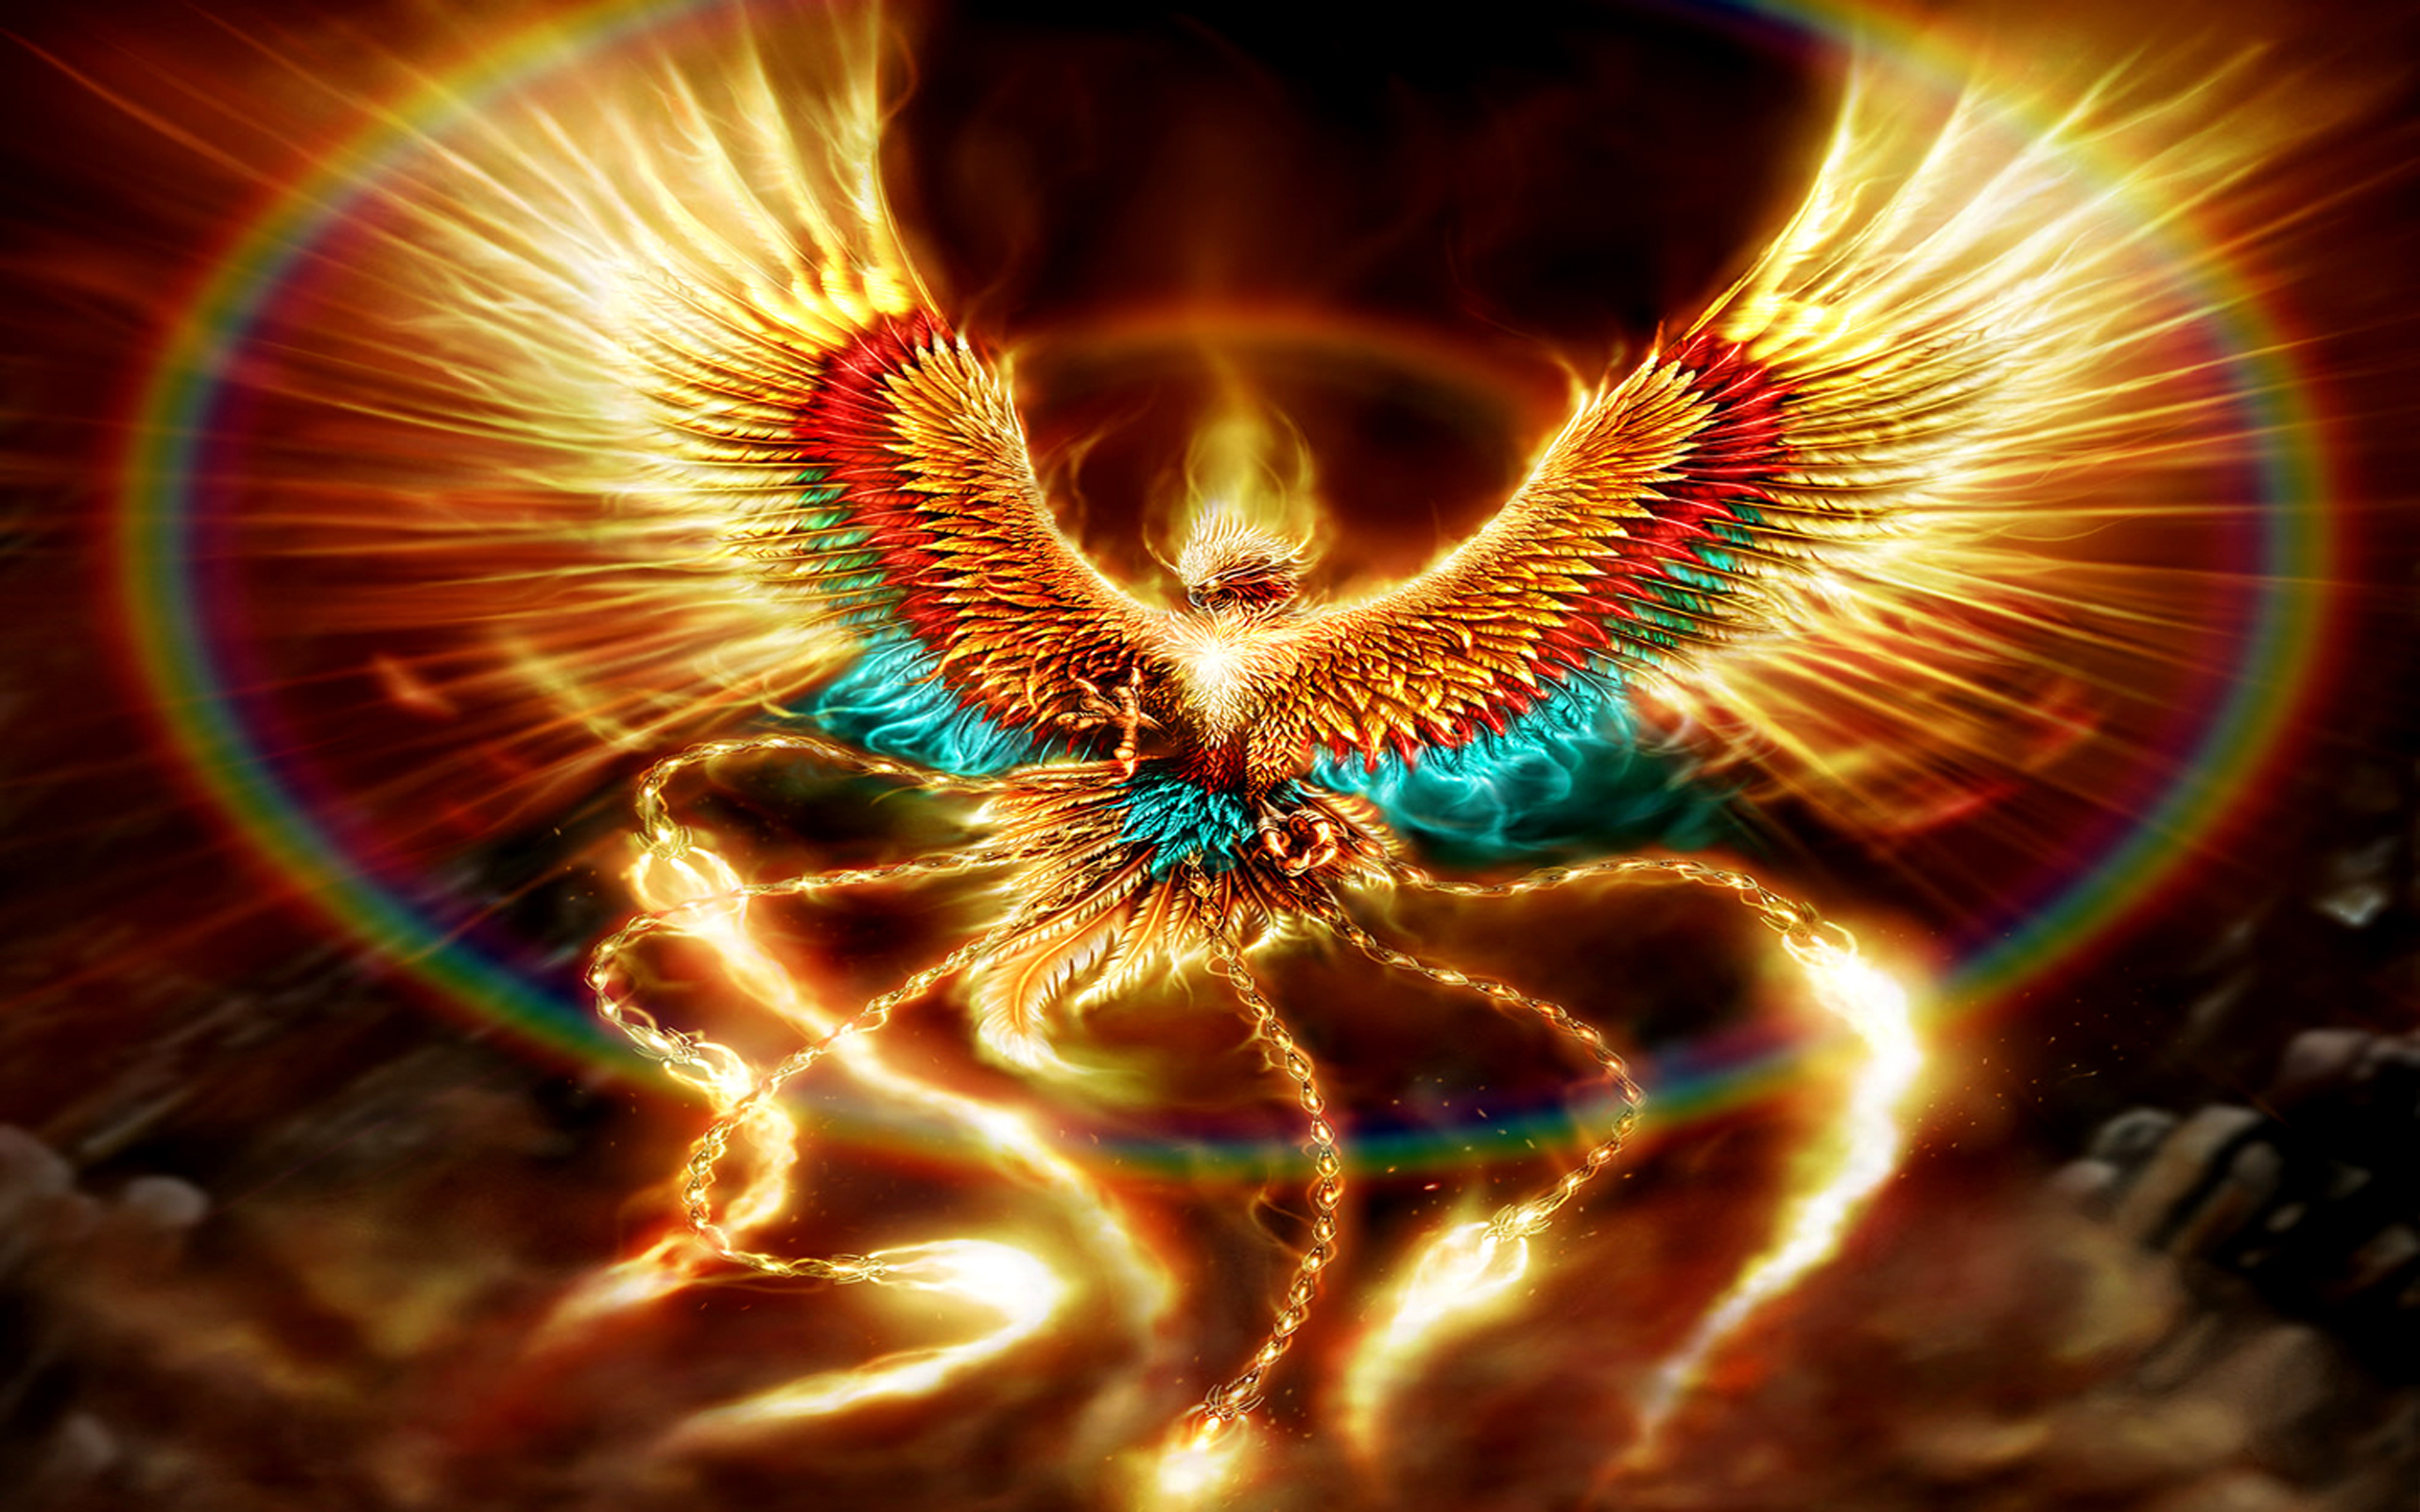 52 Phoenix HD Wallpapers   Background Images   Wallpaper Abyss HD Wallpaper   Background Image ID 104284